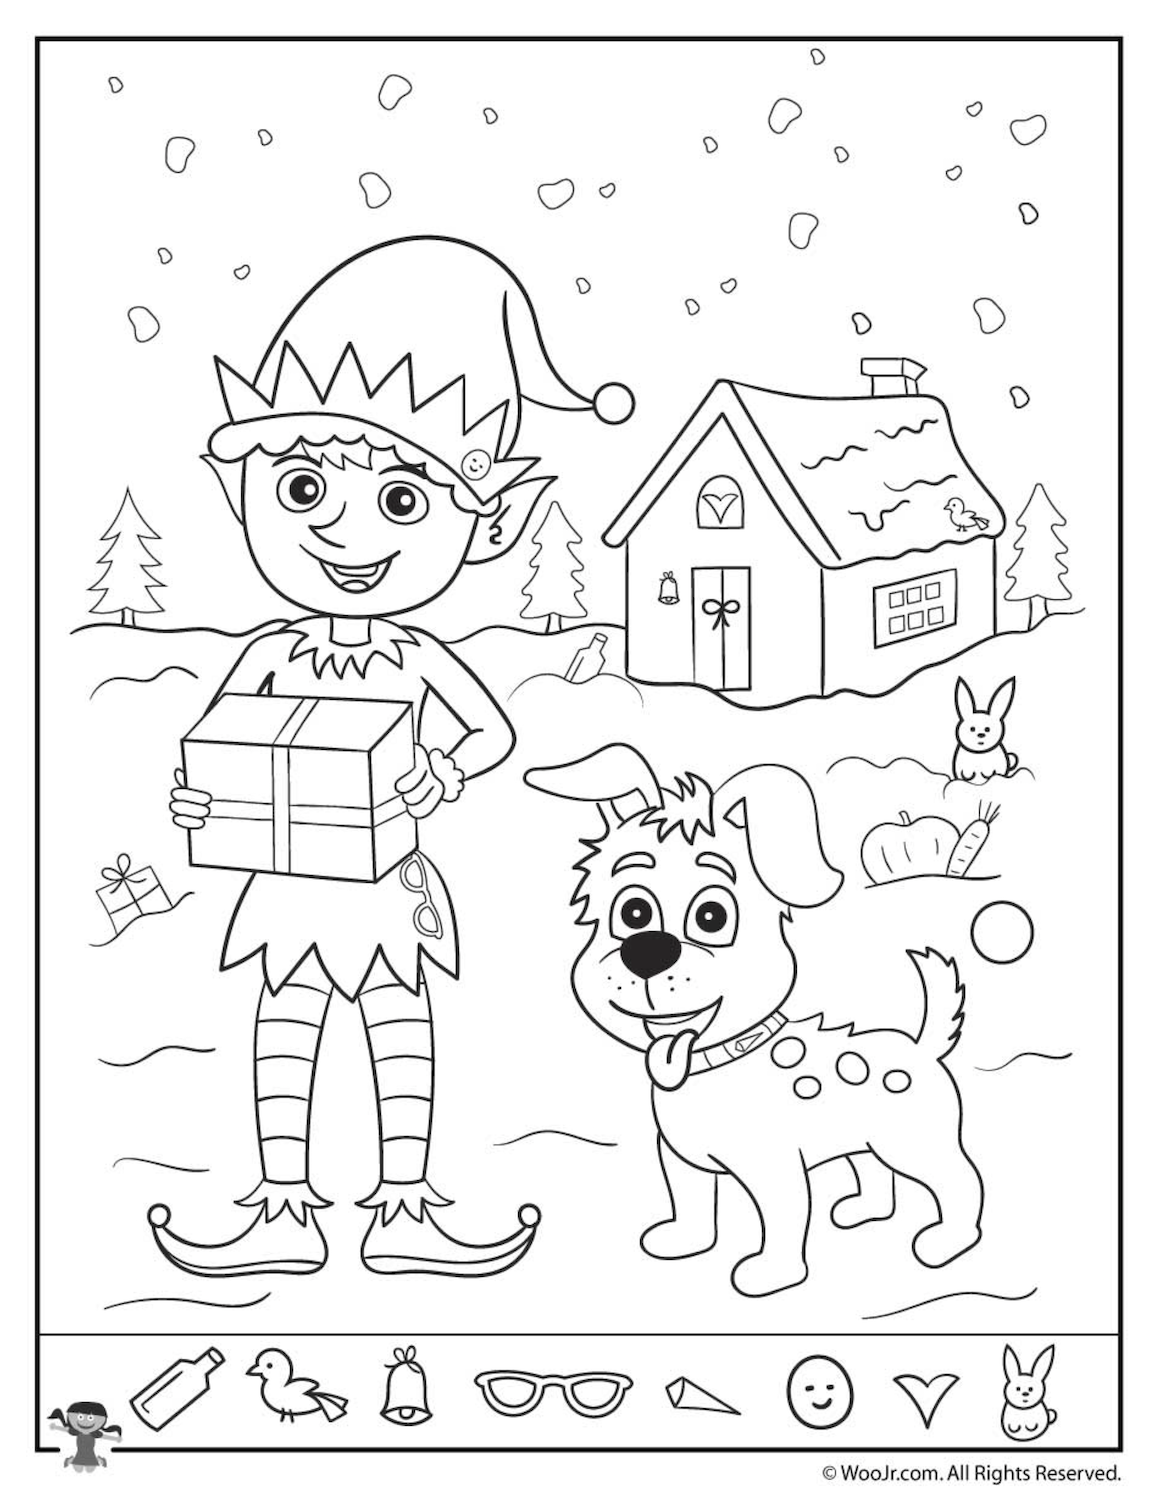 Christmas Coloring Pages | Pinterest | Free christmas printables ...